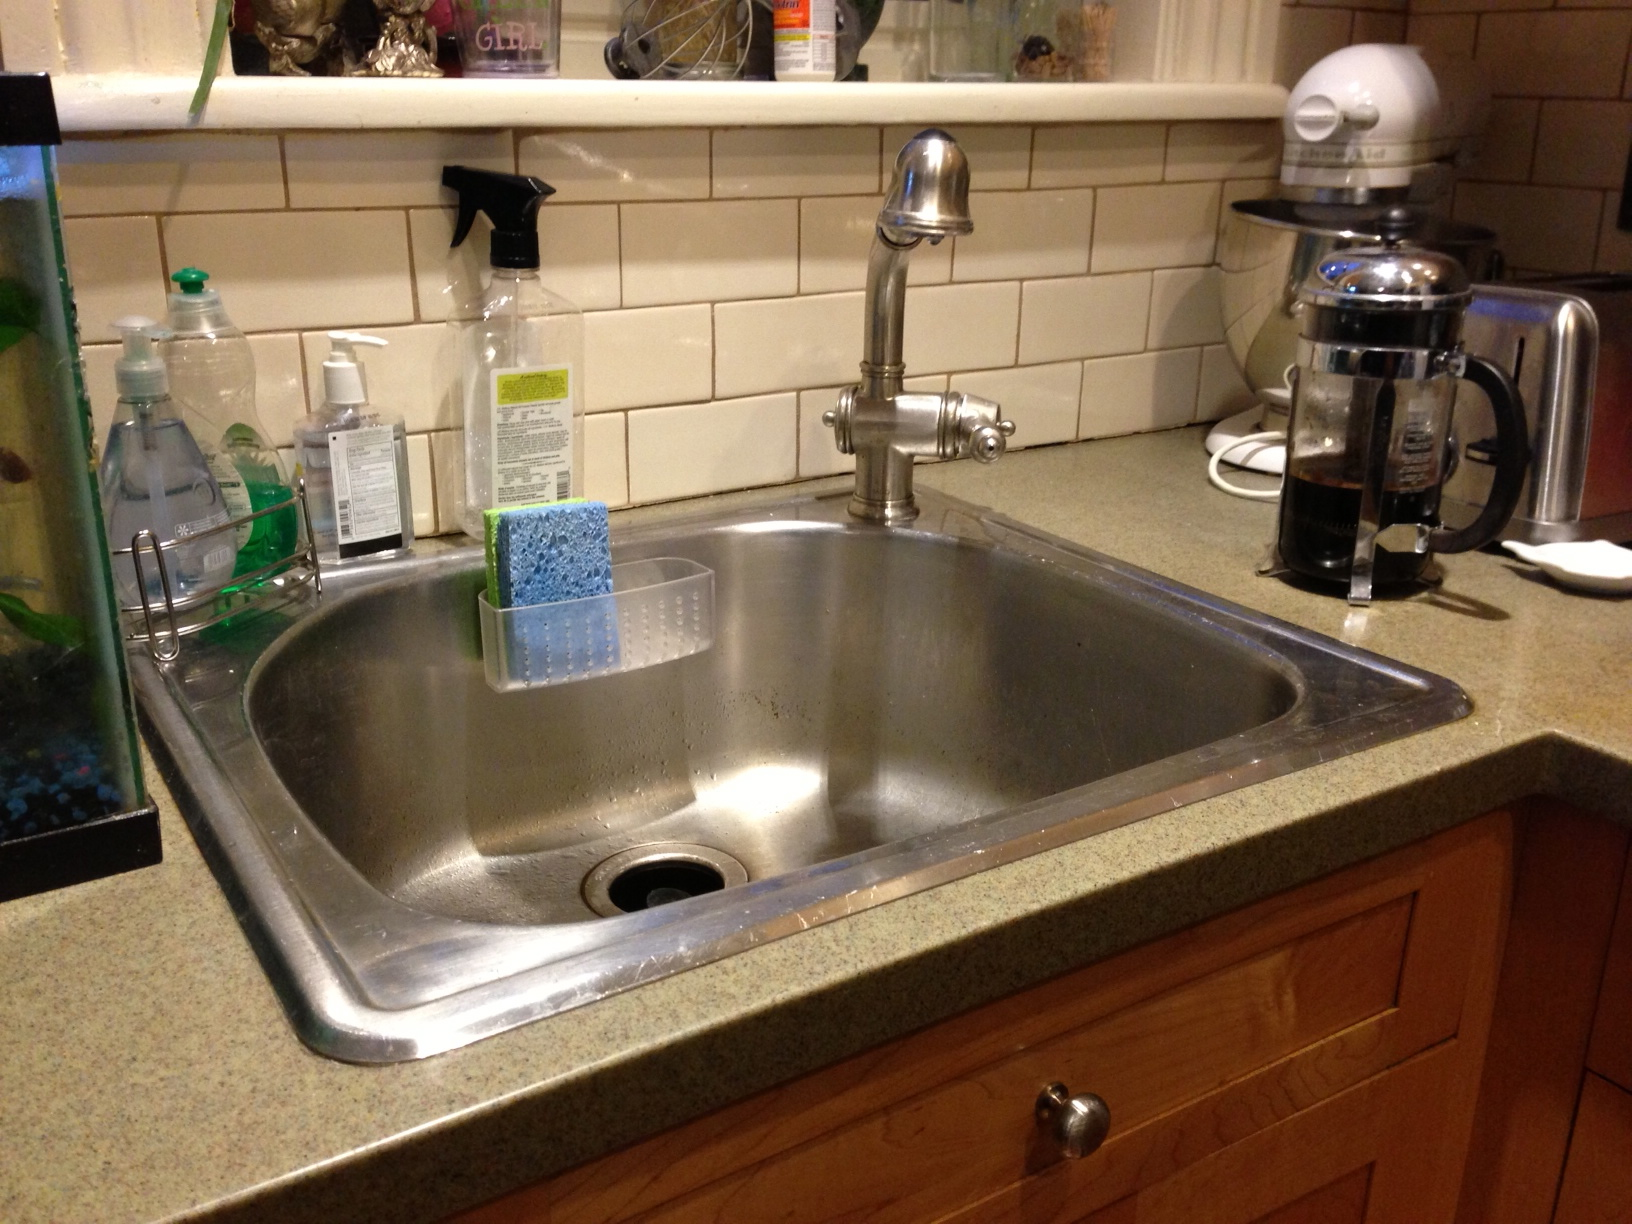 Farmhouse Sink With Faucet : ... Function?A Farmhouse Sink and That Perrin & Rowe Bridge Mixer Faucet